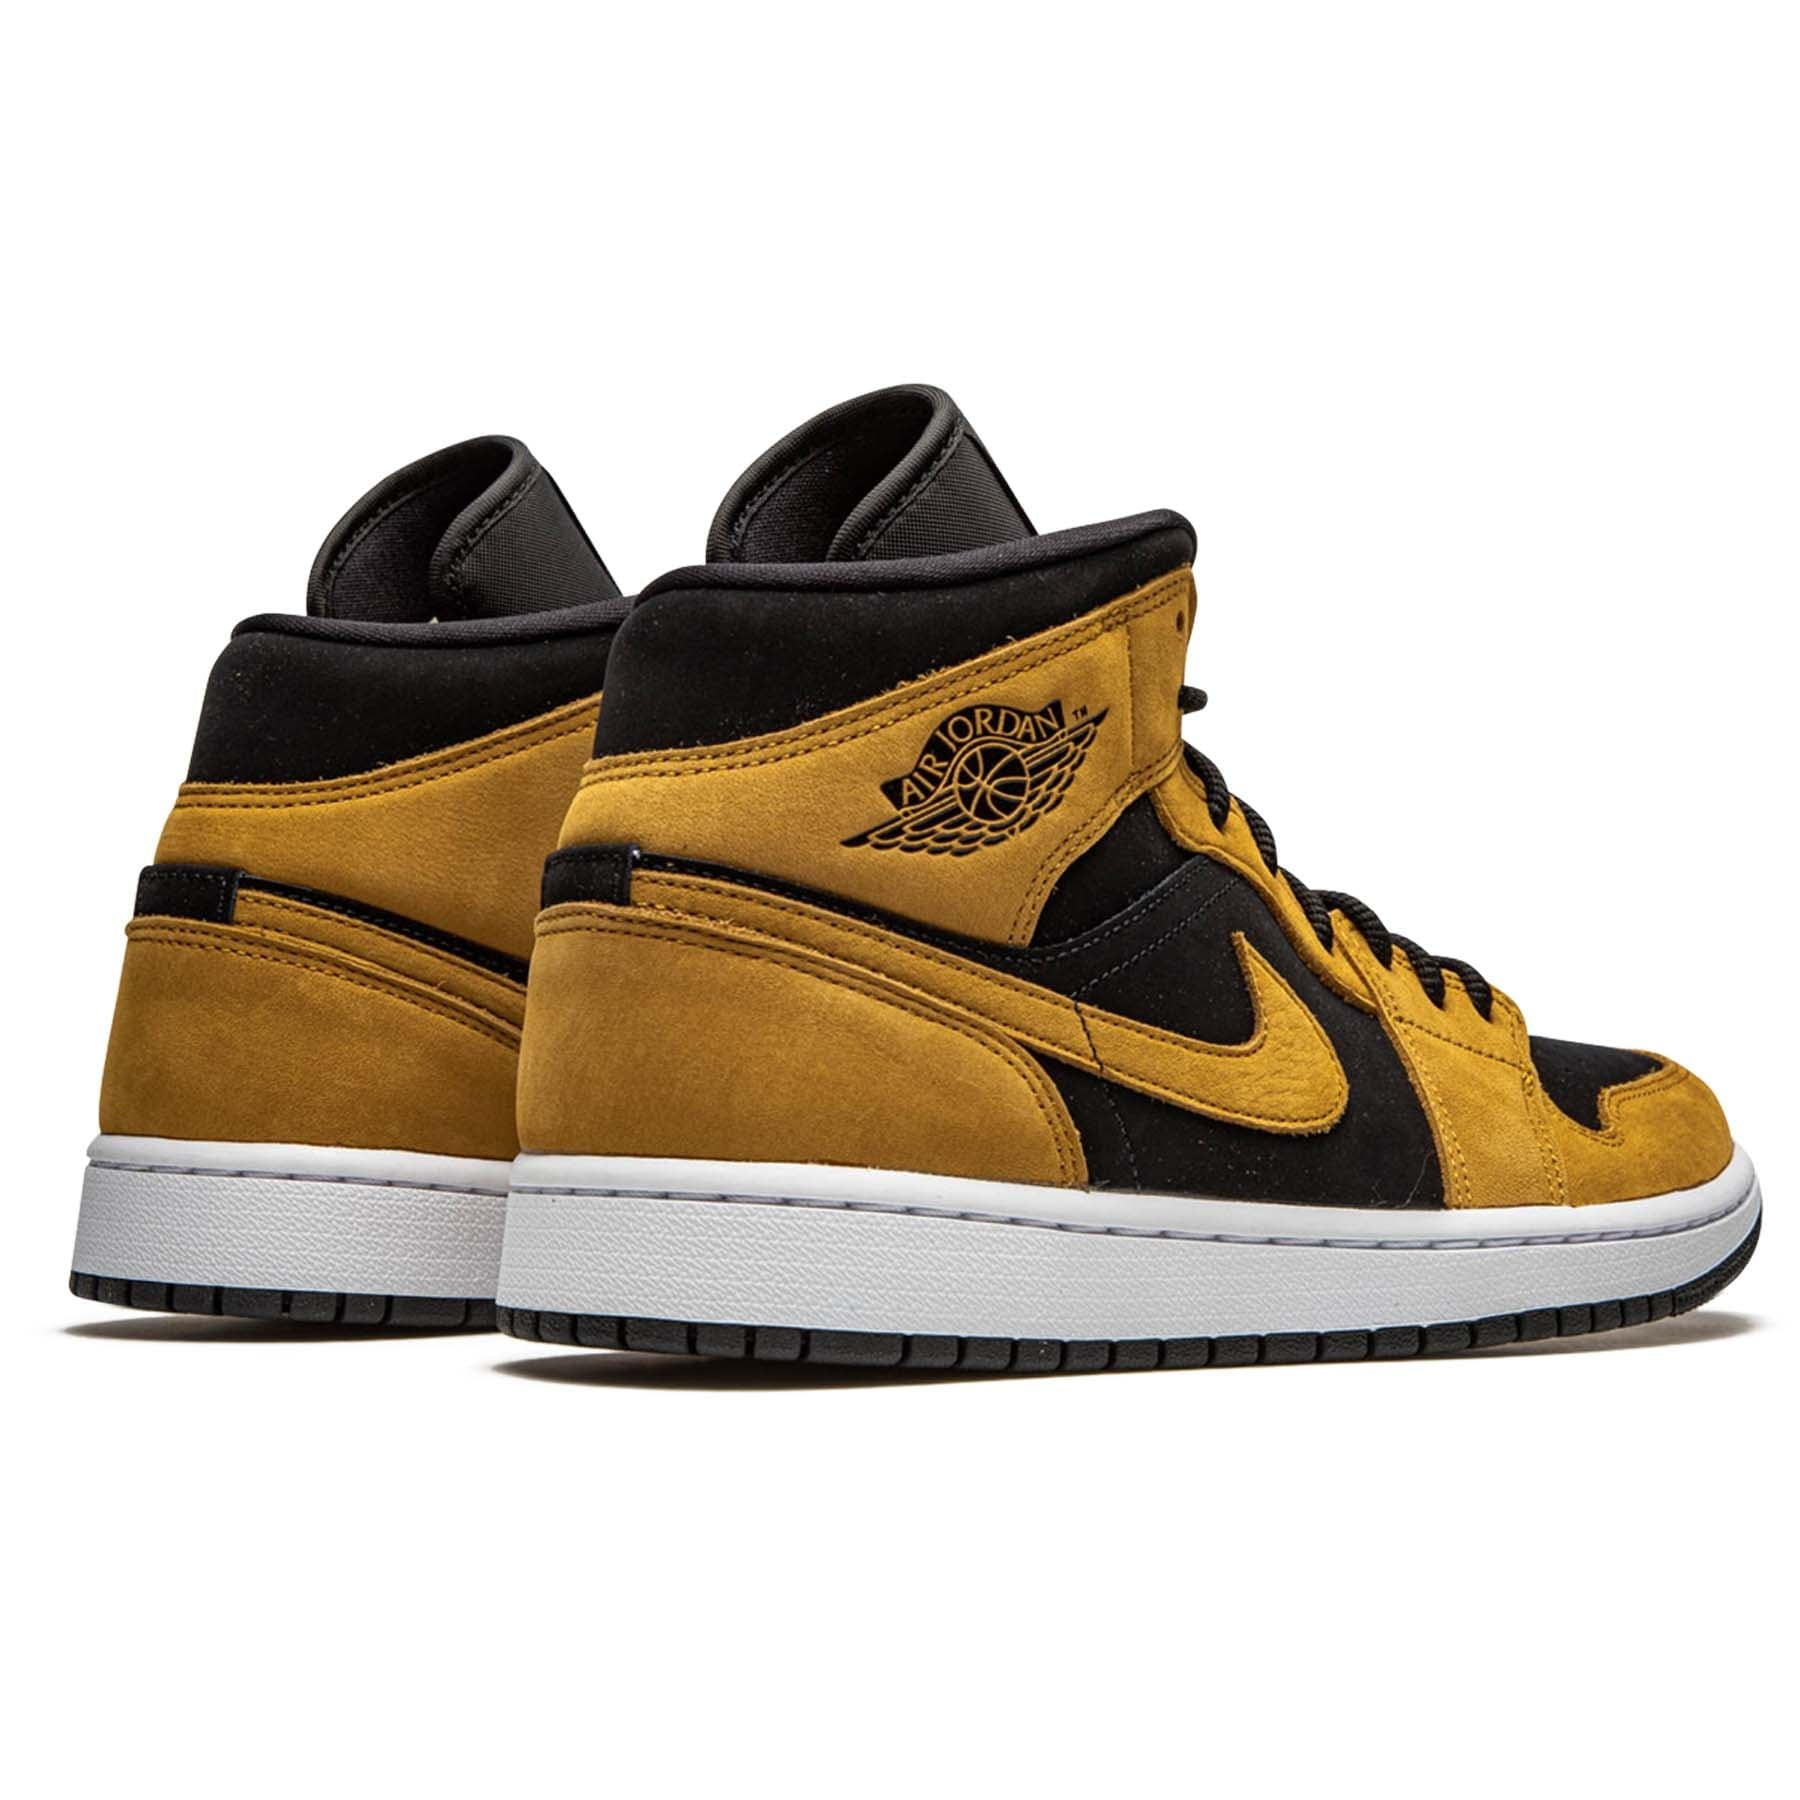 Air Jordan 1 Wmns Mid SE 'Desert Ochre' - Kick Game